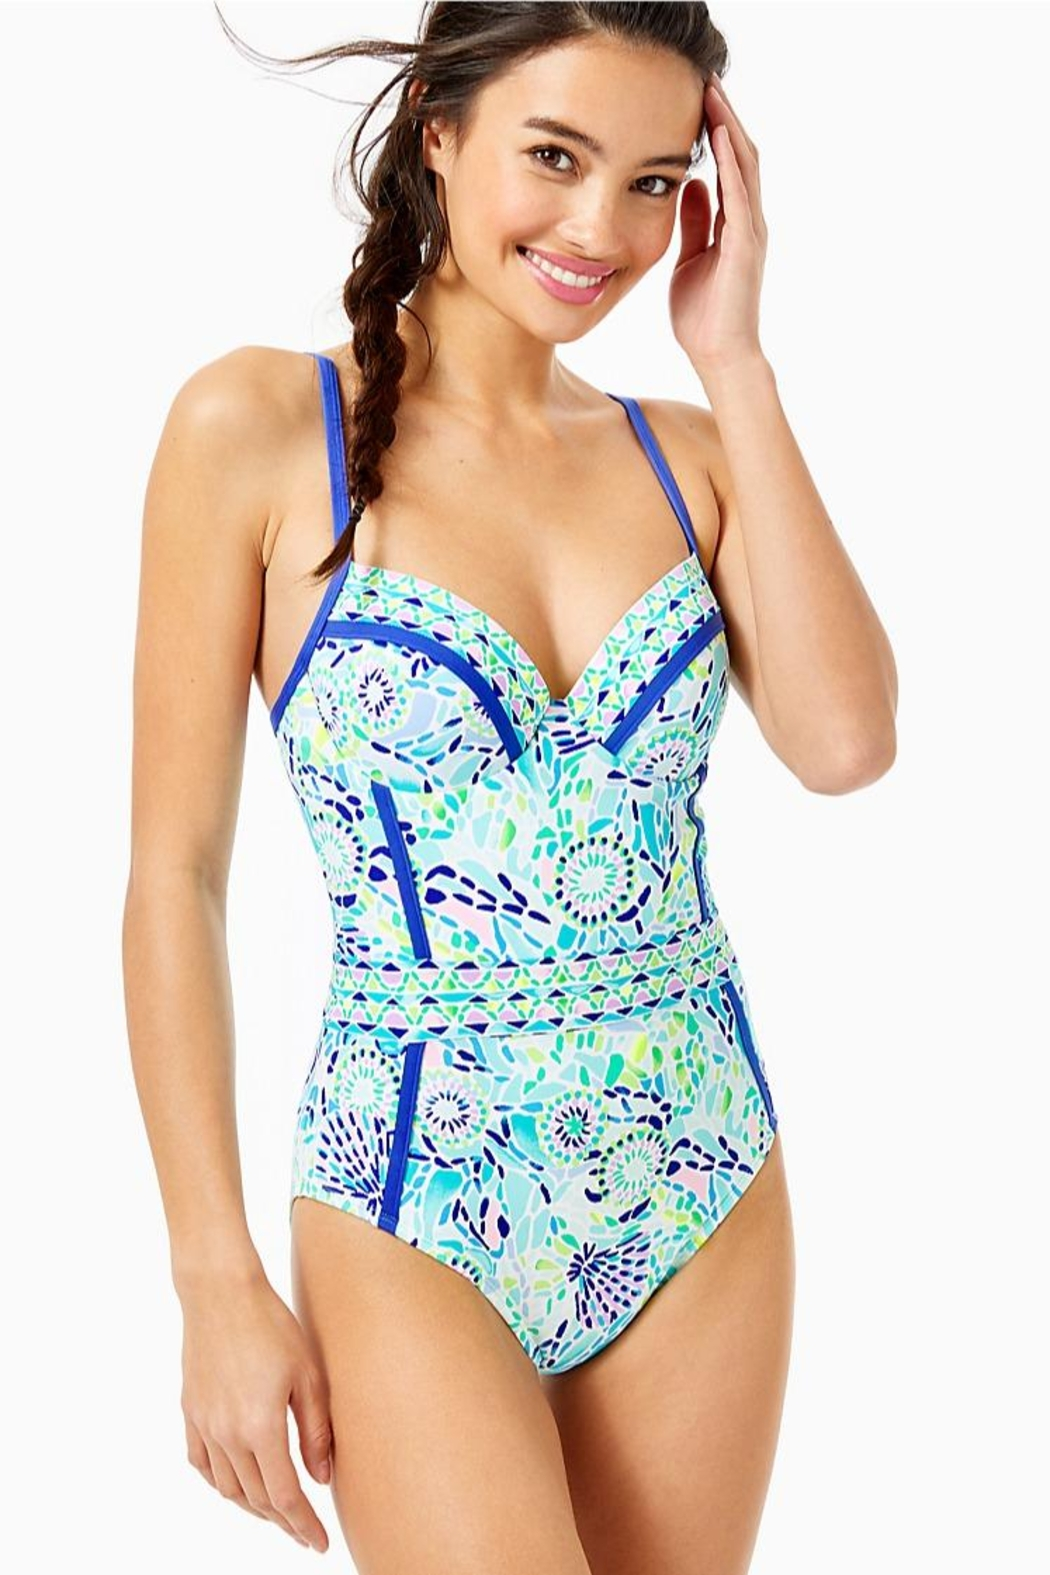 Lilly Pulitzer Palma One-Piece Swimsuit - Main Image